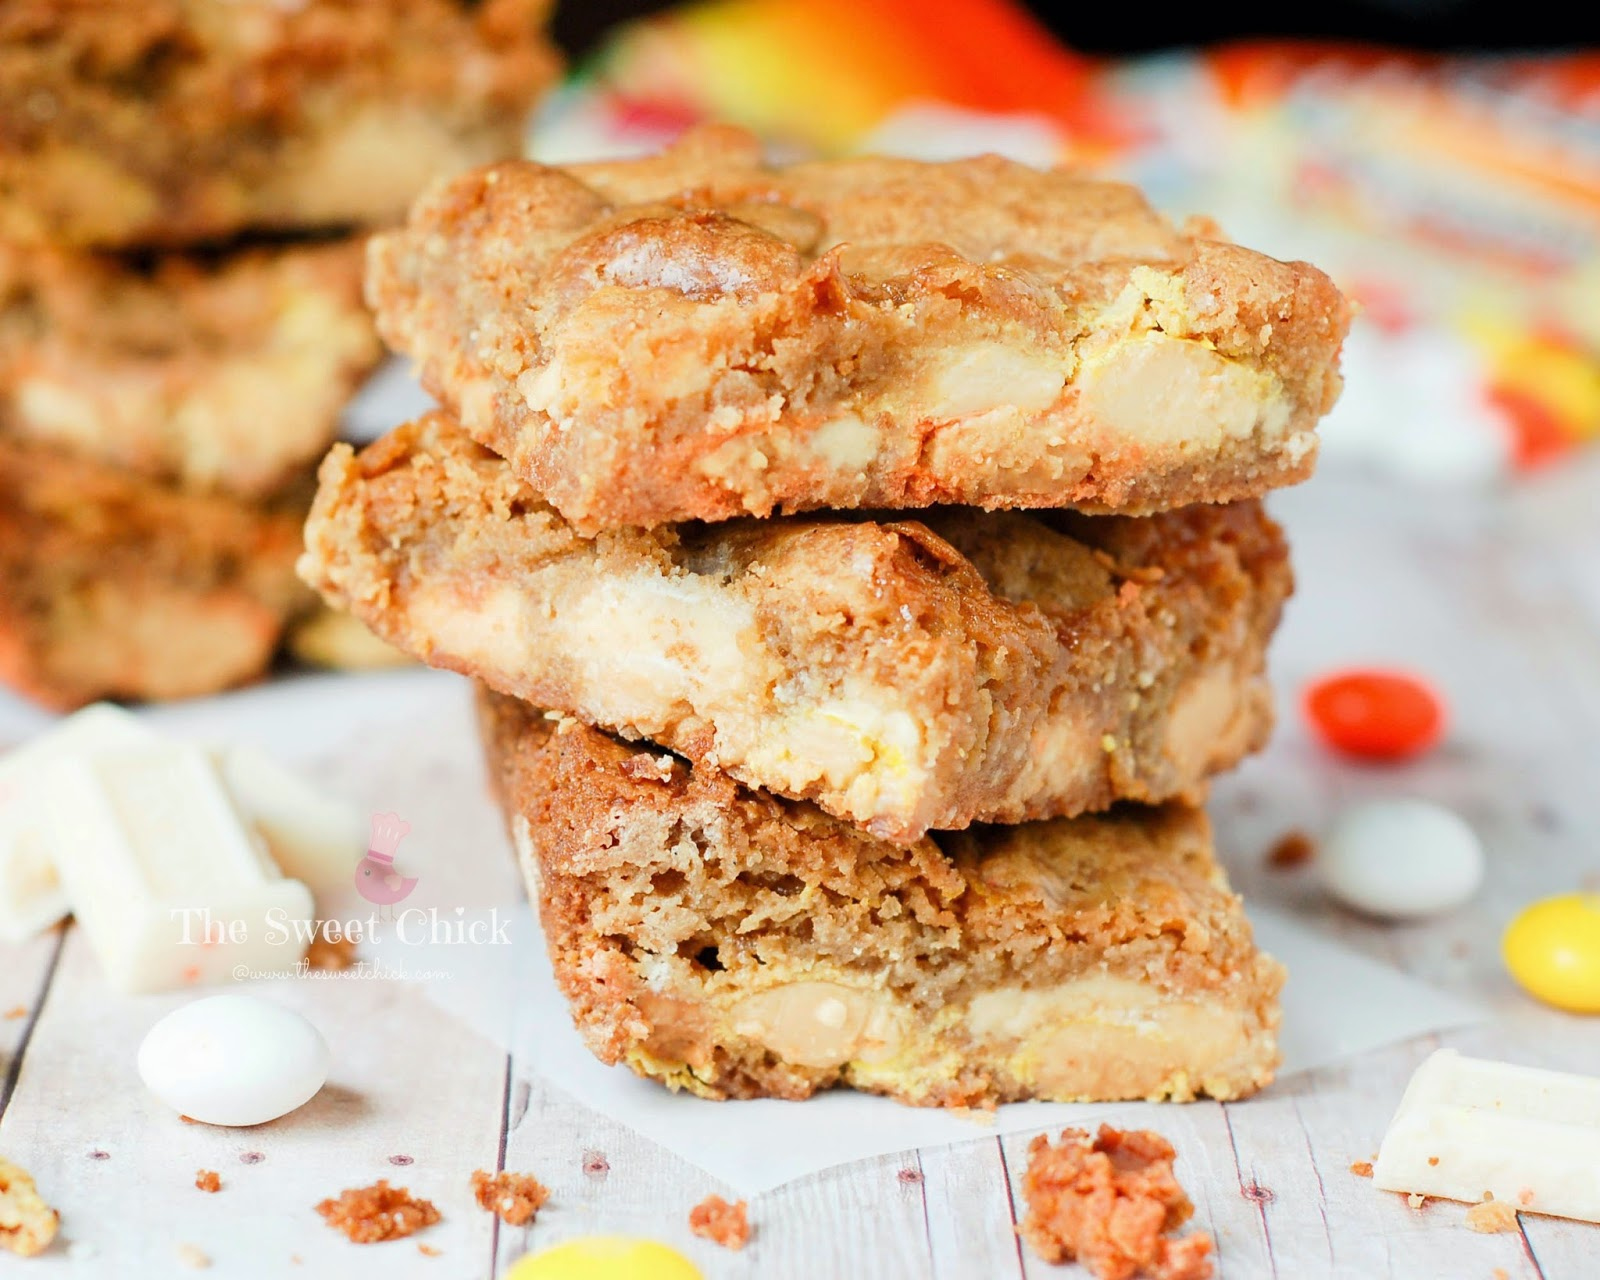 Candy Corn Creme Blondie by The Sweet Chick